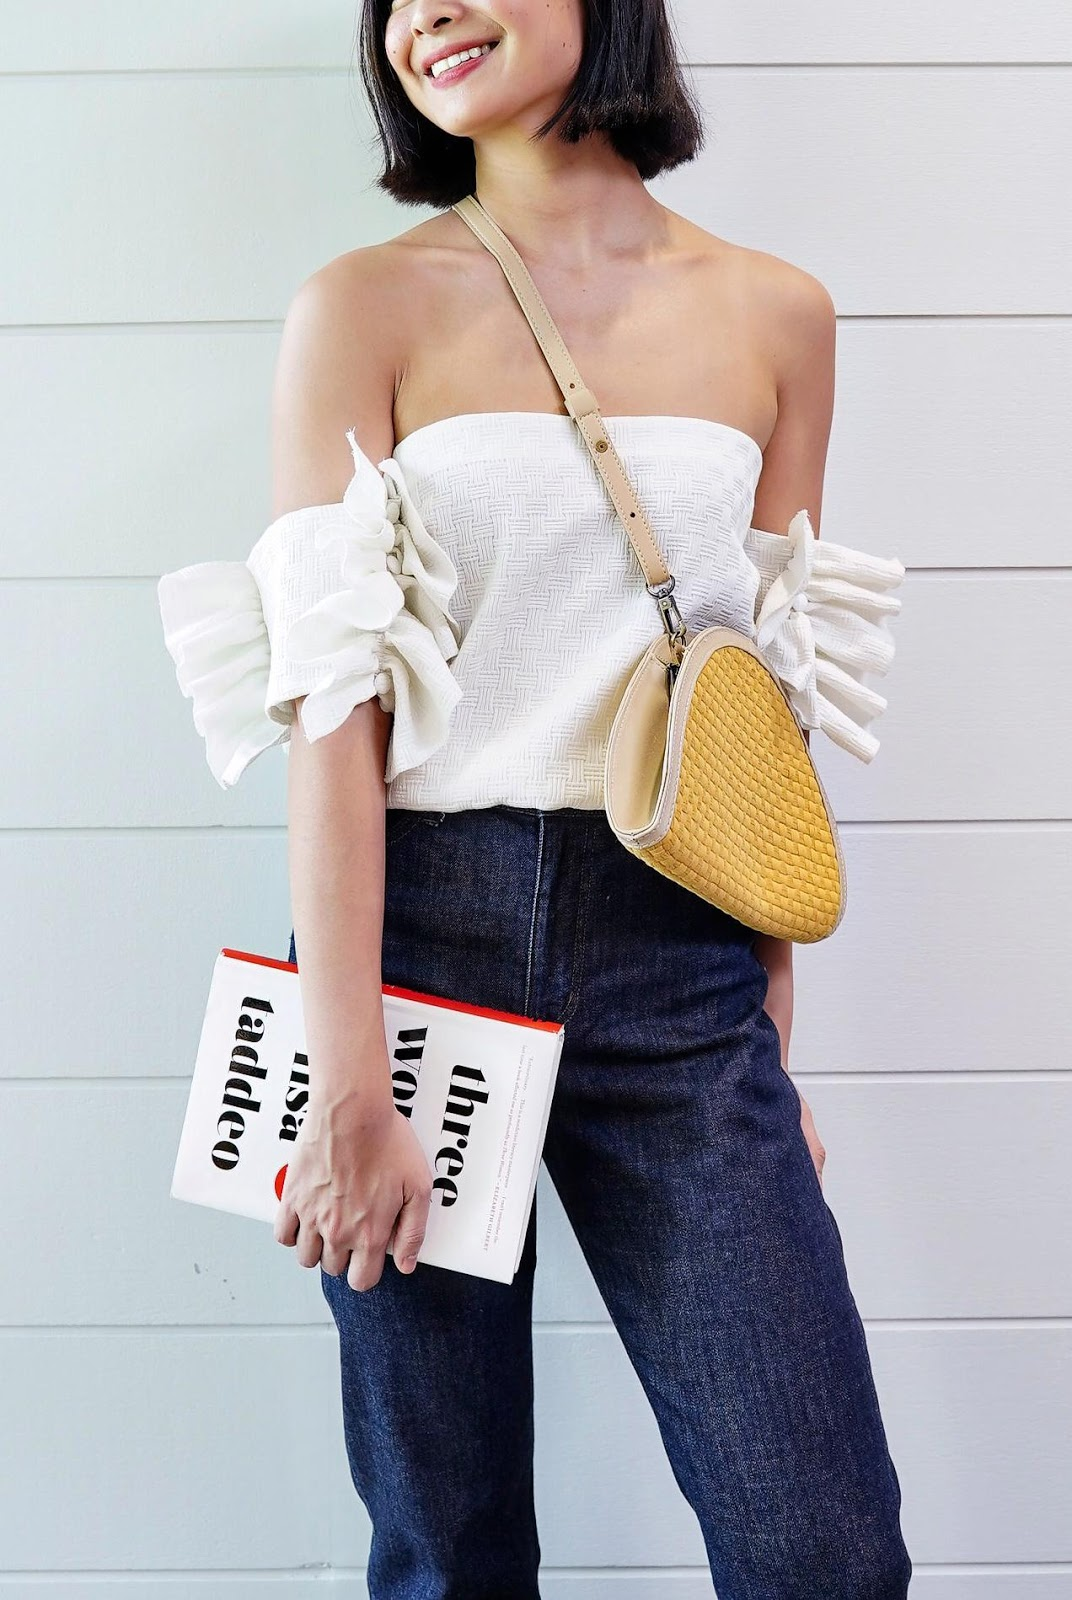 Oh, the places you'll go with your Rockwellist Clutch!